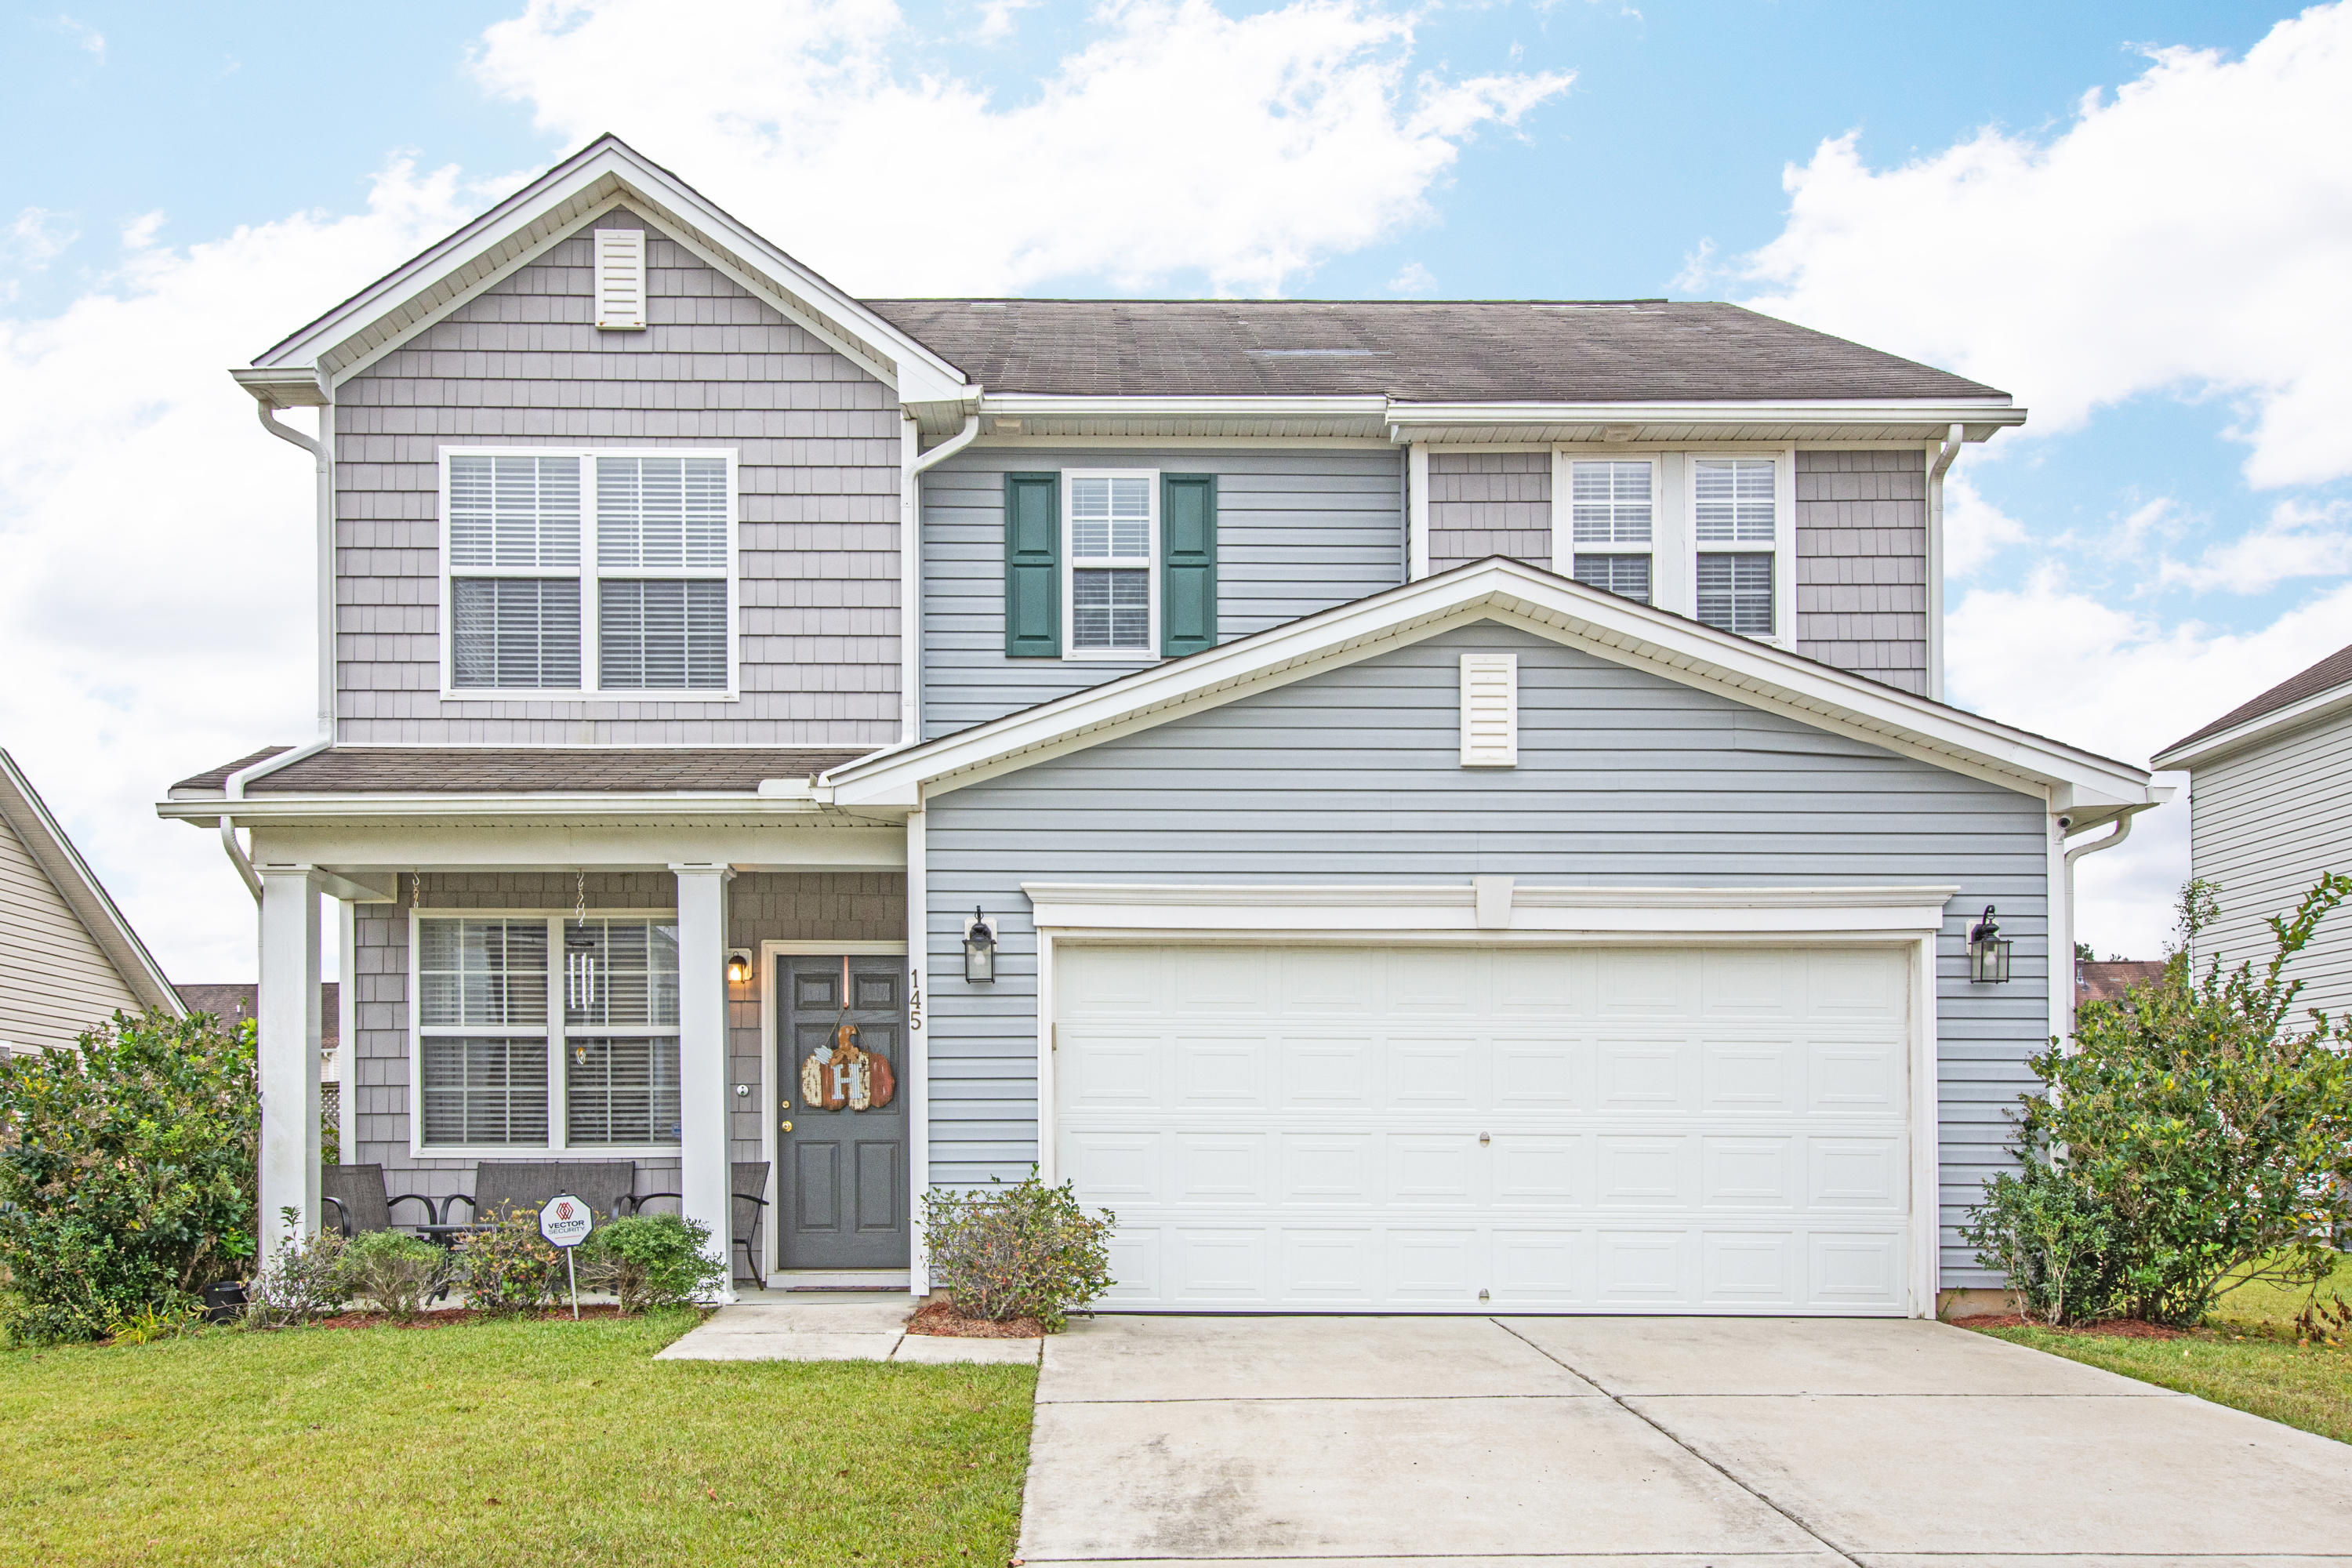 145 Woodbrook Way Moncks Corner, SC 29461